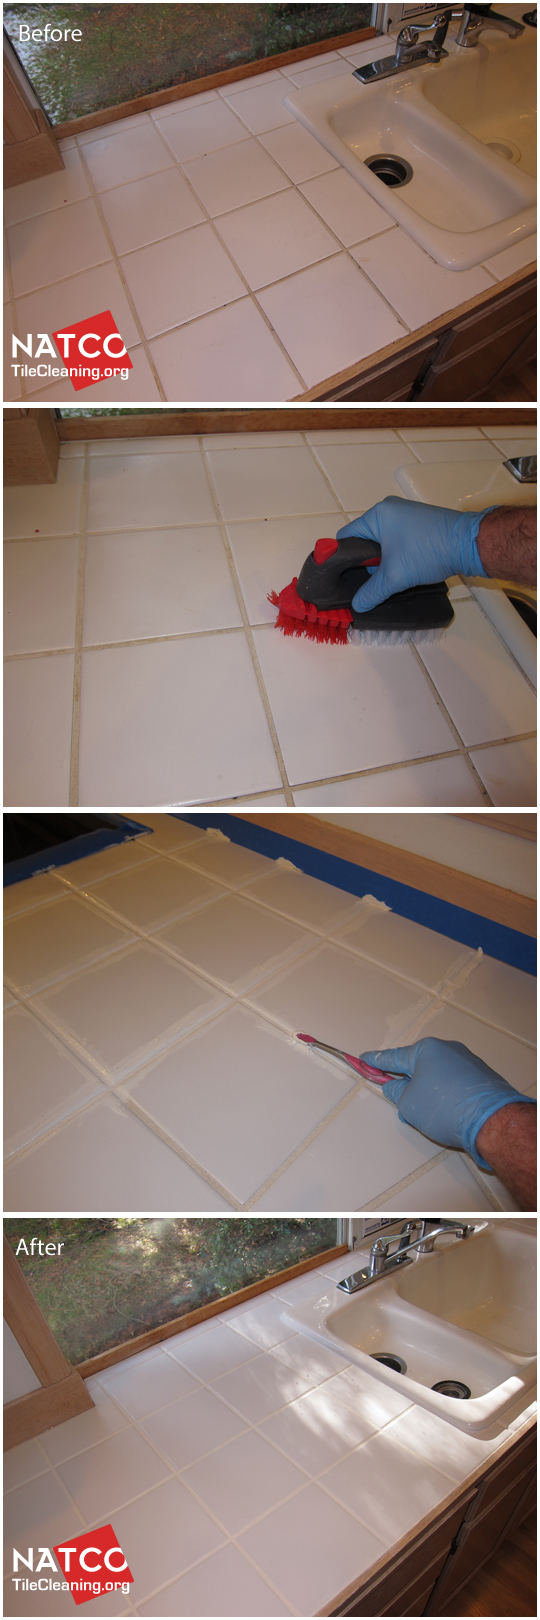 How To Clean, Colorseal And Restore A Tile Countertop With White Grout  Lines.